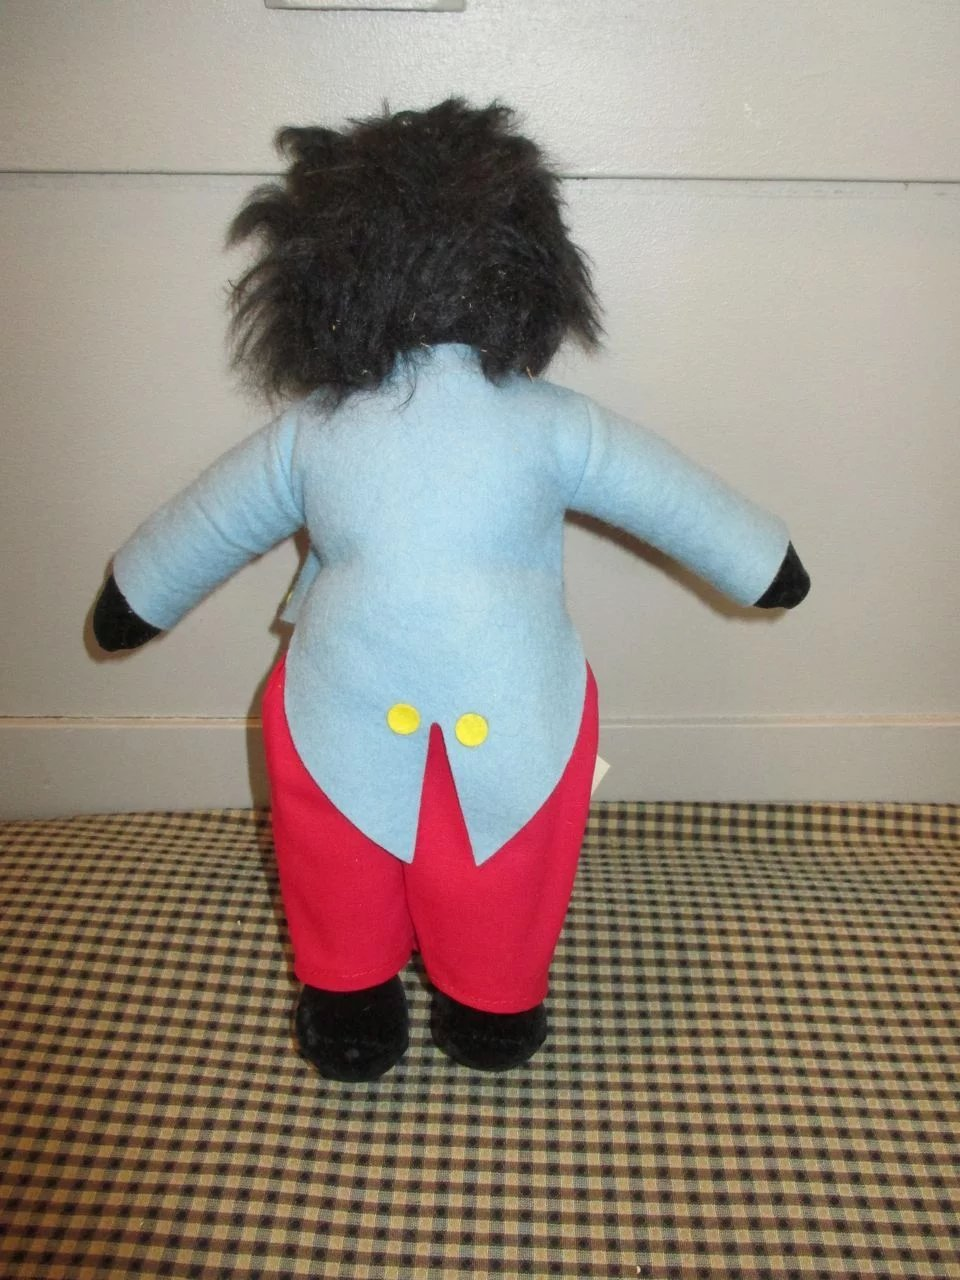 Limited Edition Dean S Golliwog Doll No 44 Of Only 250